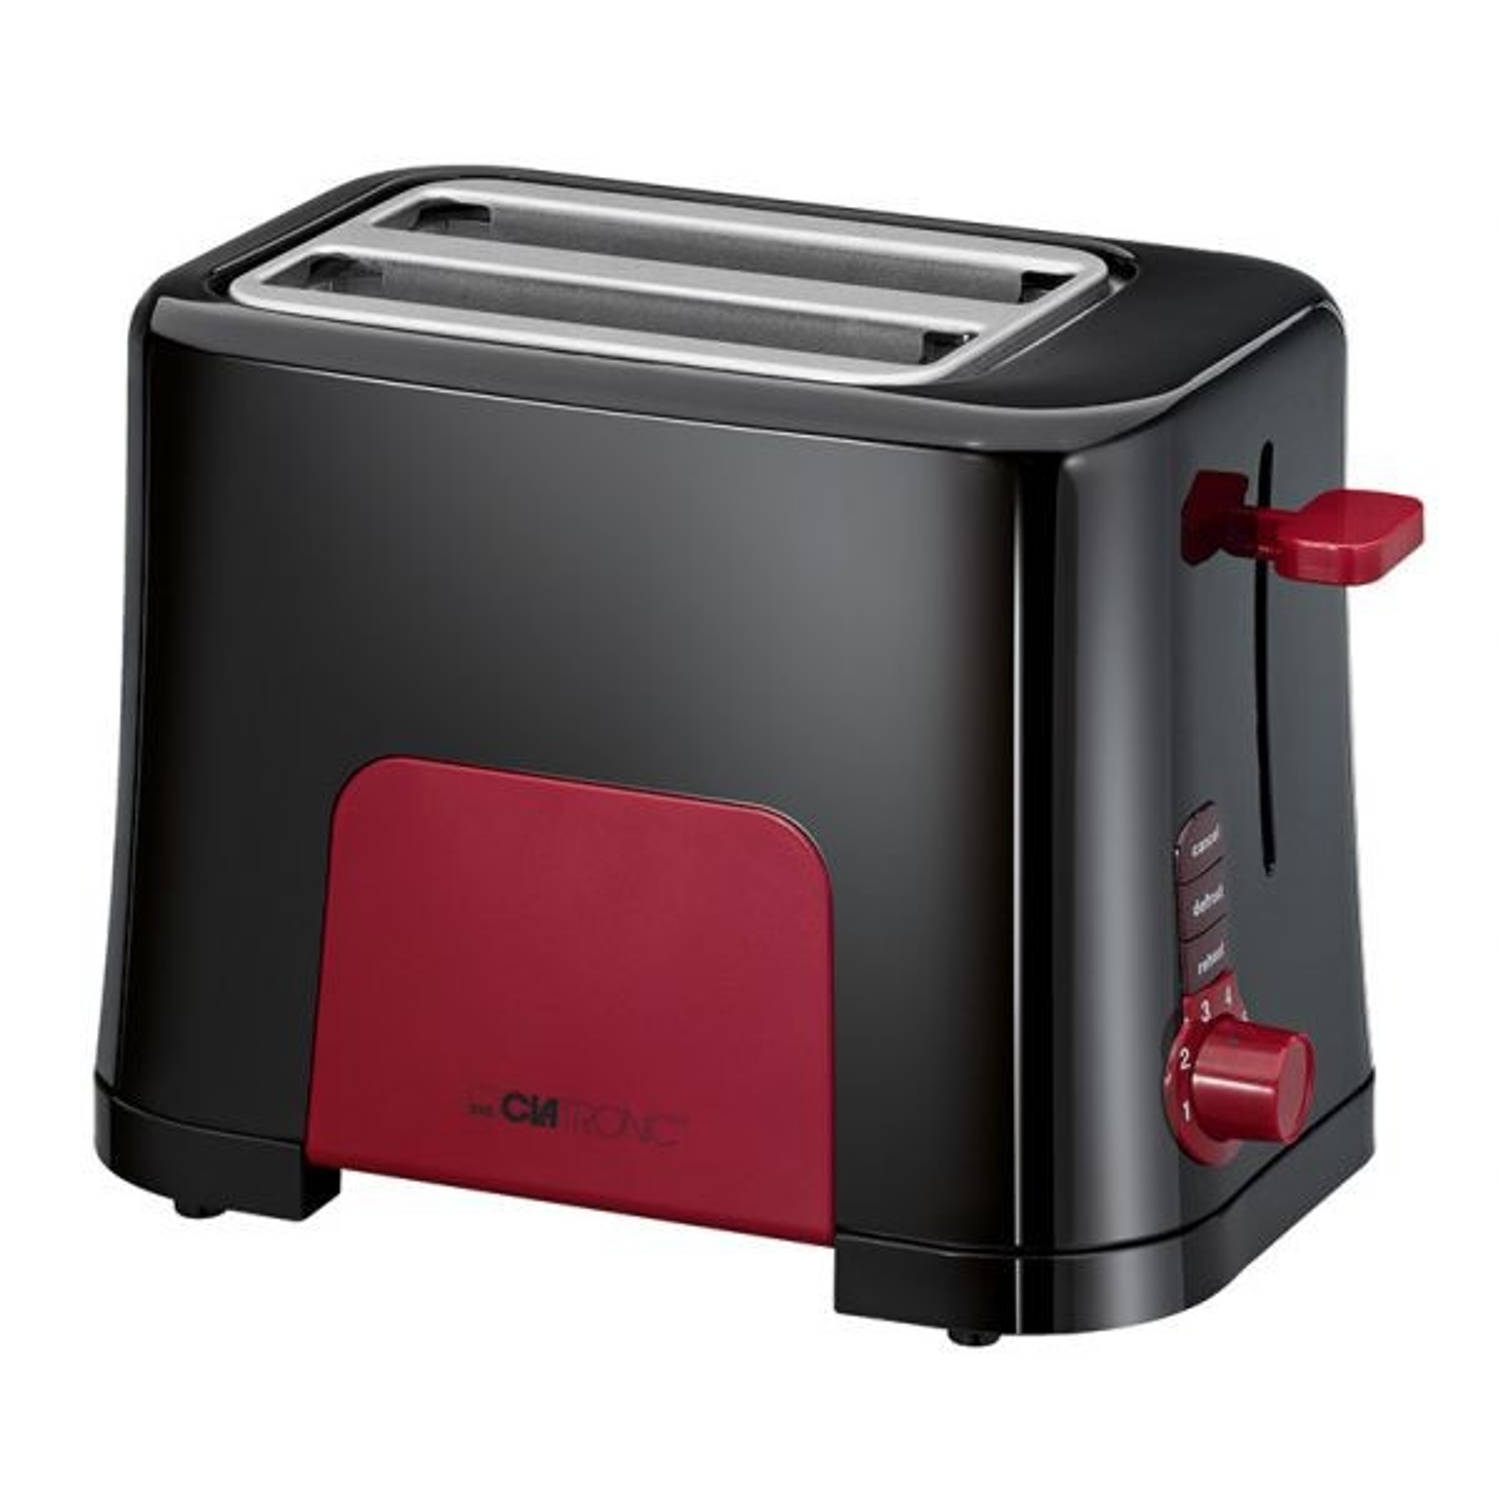 Clatronic broodrooster-toaster ta 3551